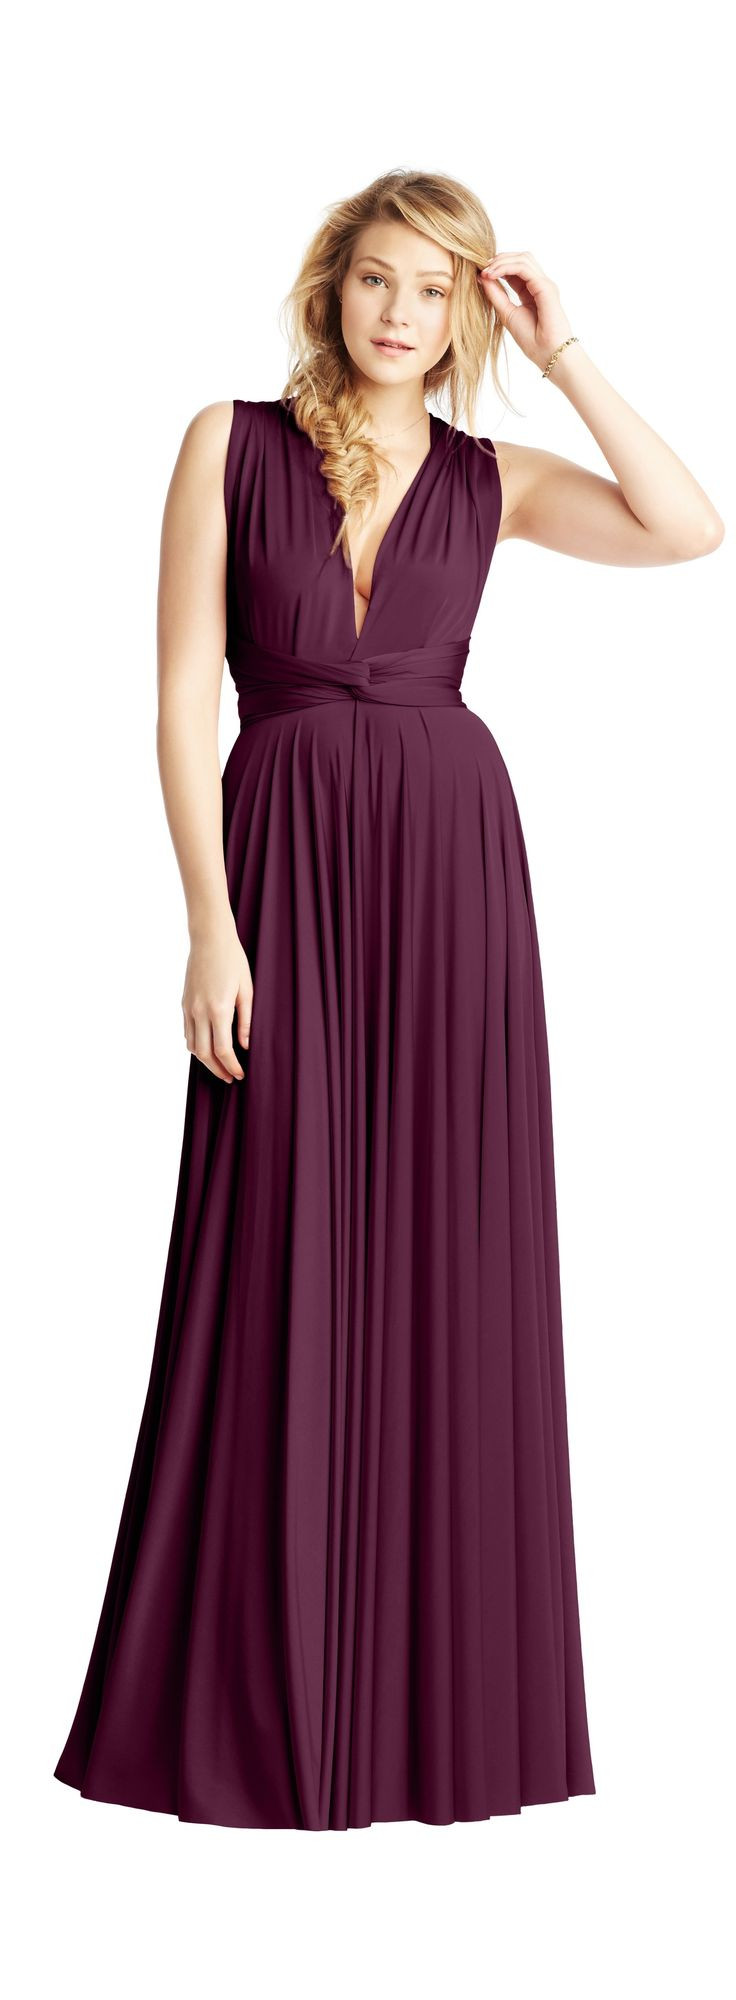 The 25 best two birds dress ideas on pinterest two birds two birds bridesmaid dress 2013 weddings wine ombrellifo Image collections